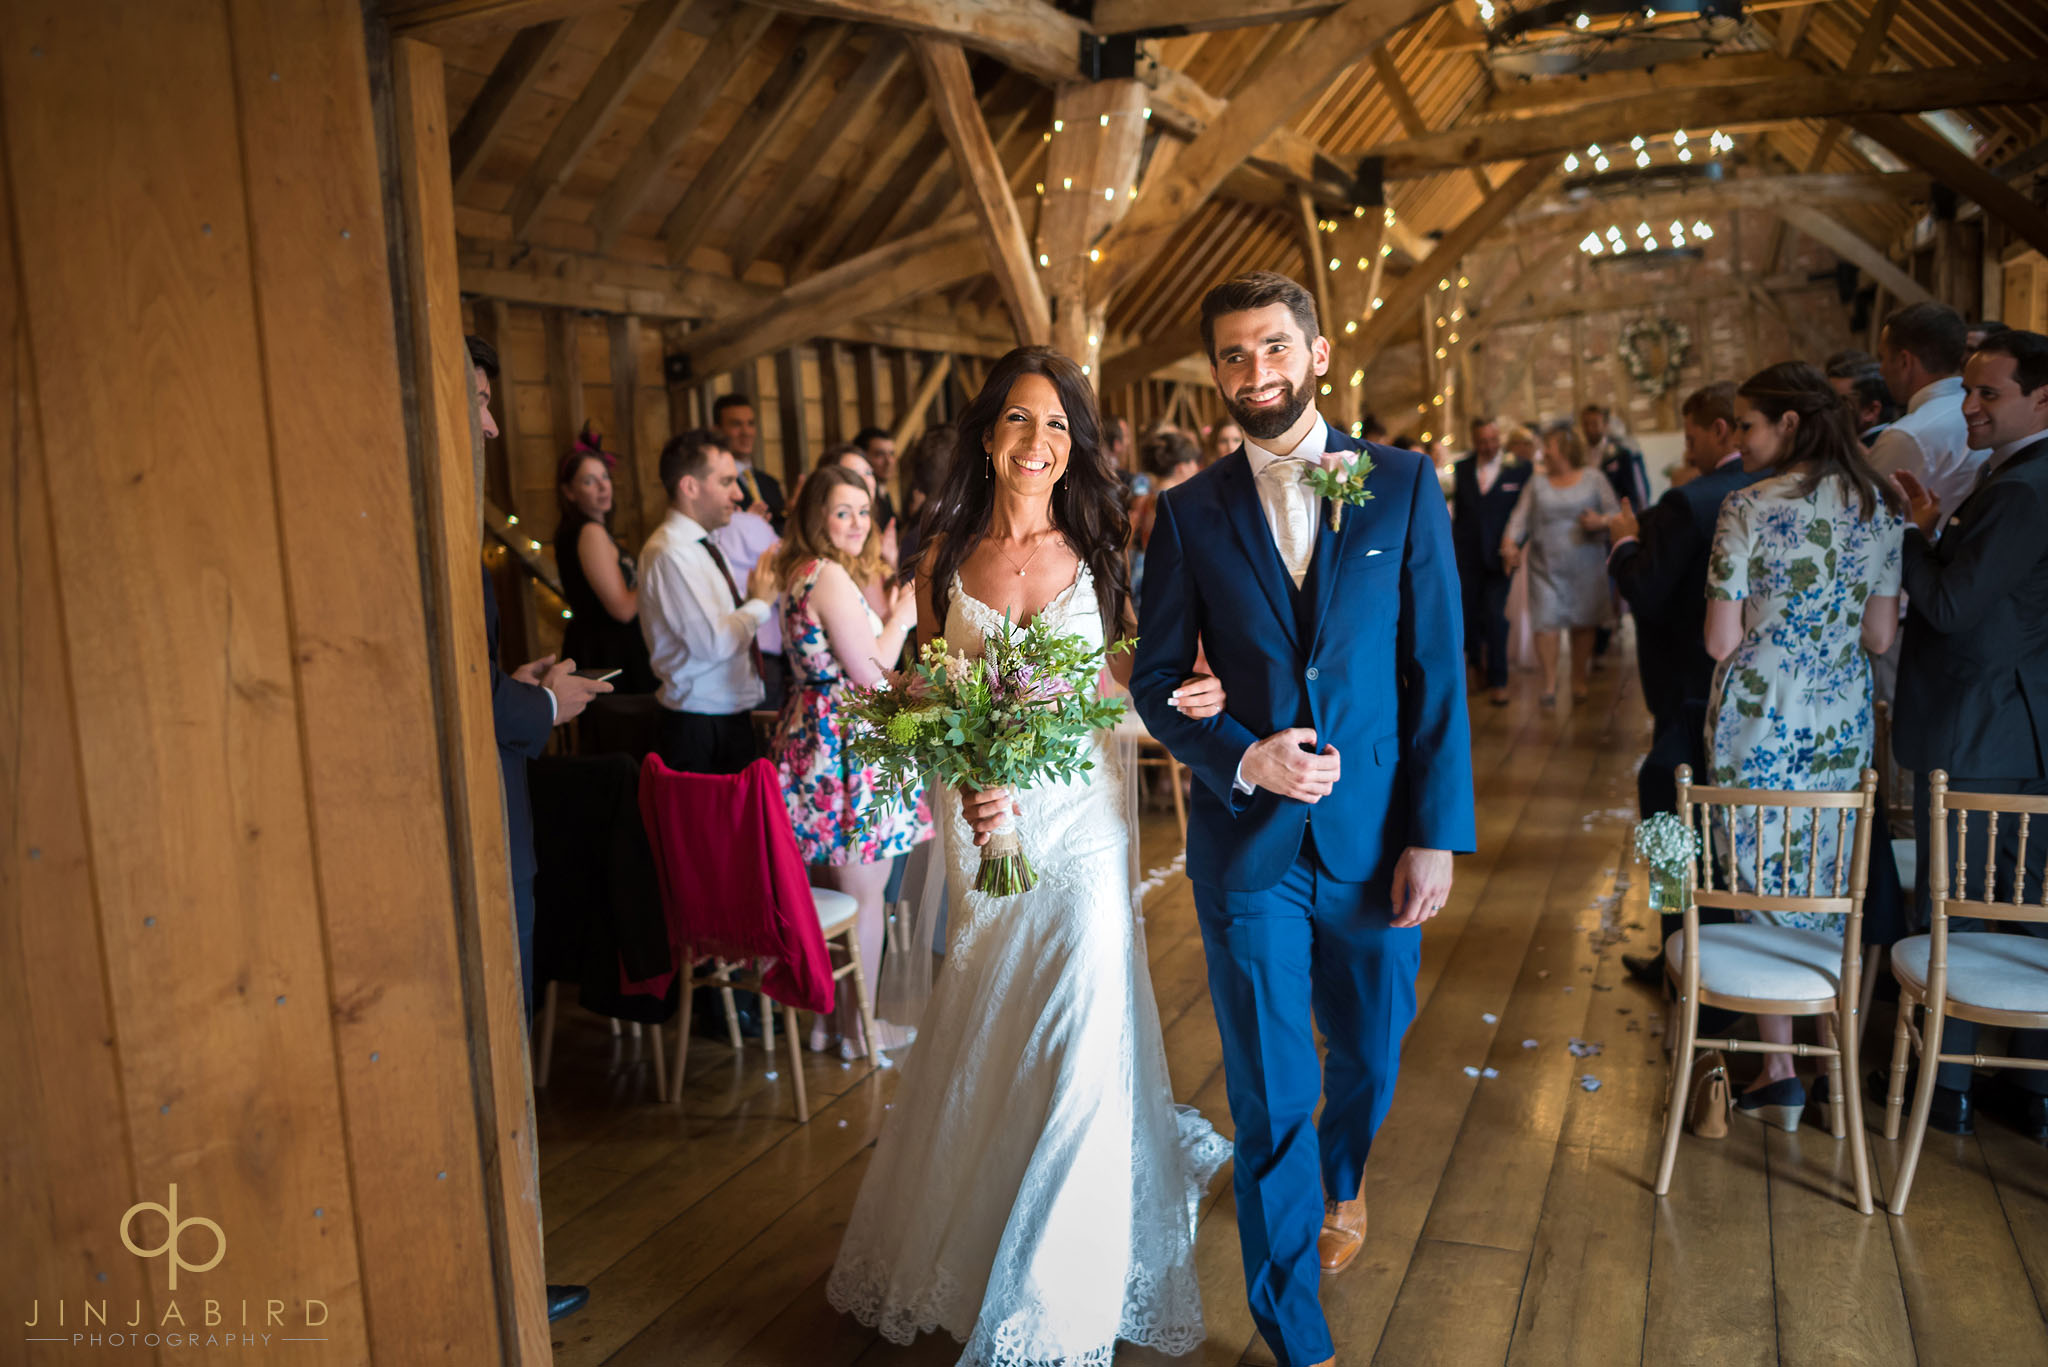 wedding venue rickety barn bassmead